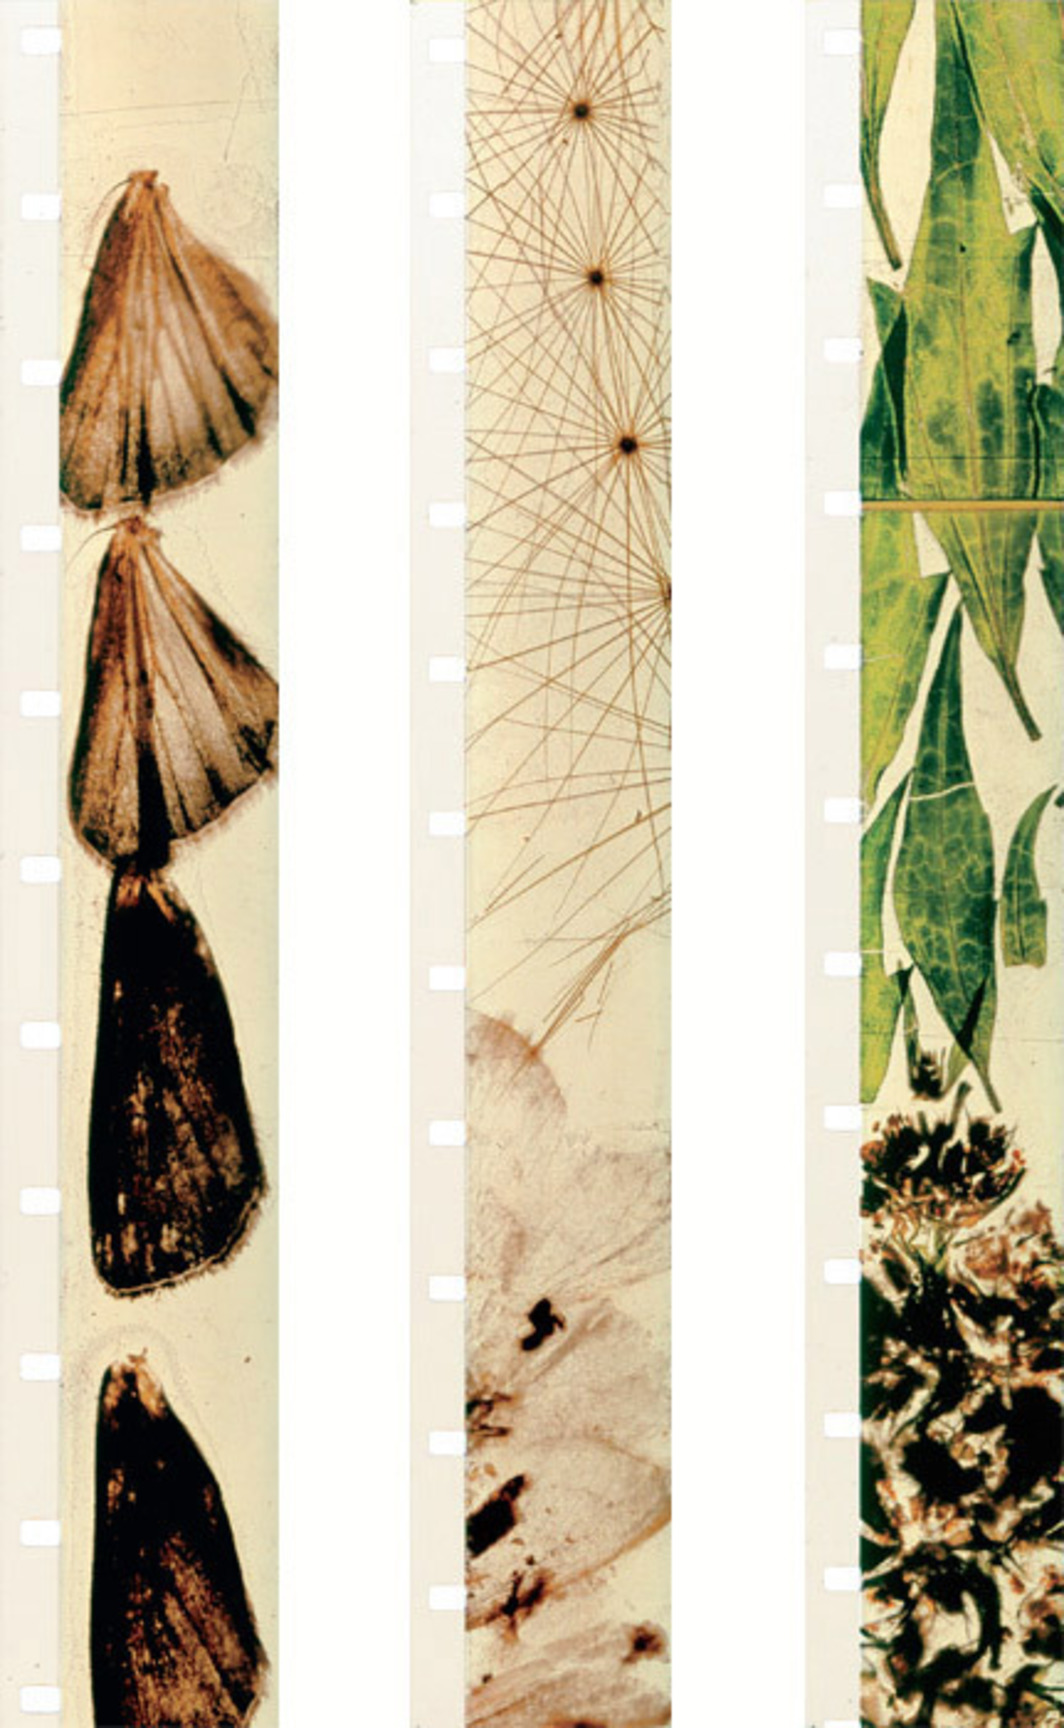 Filmstrips from Stan Brakhage's Mothlight, 1963, 16 mm, color, silent, 3 minutes 13 seconds.